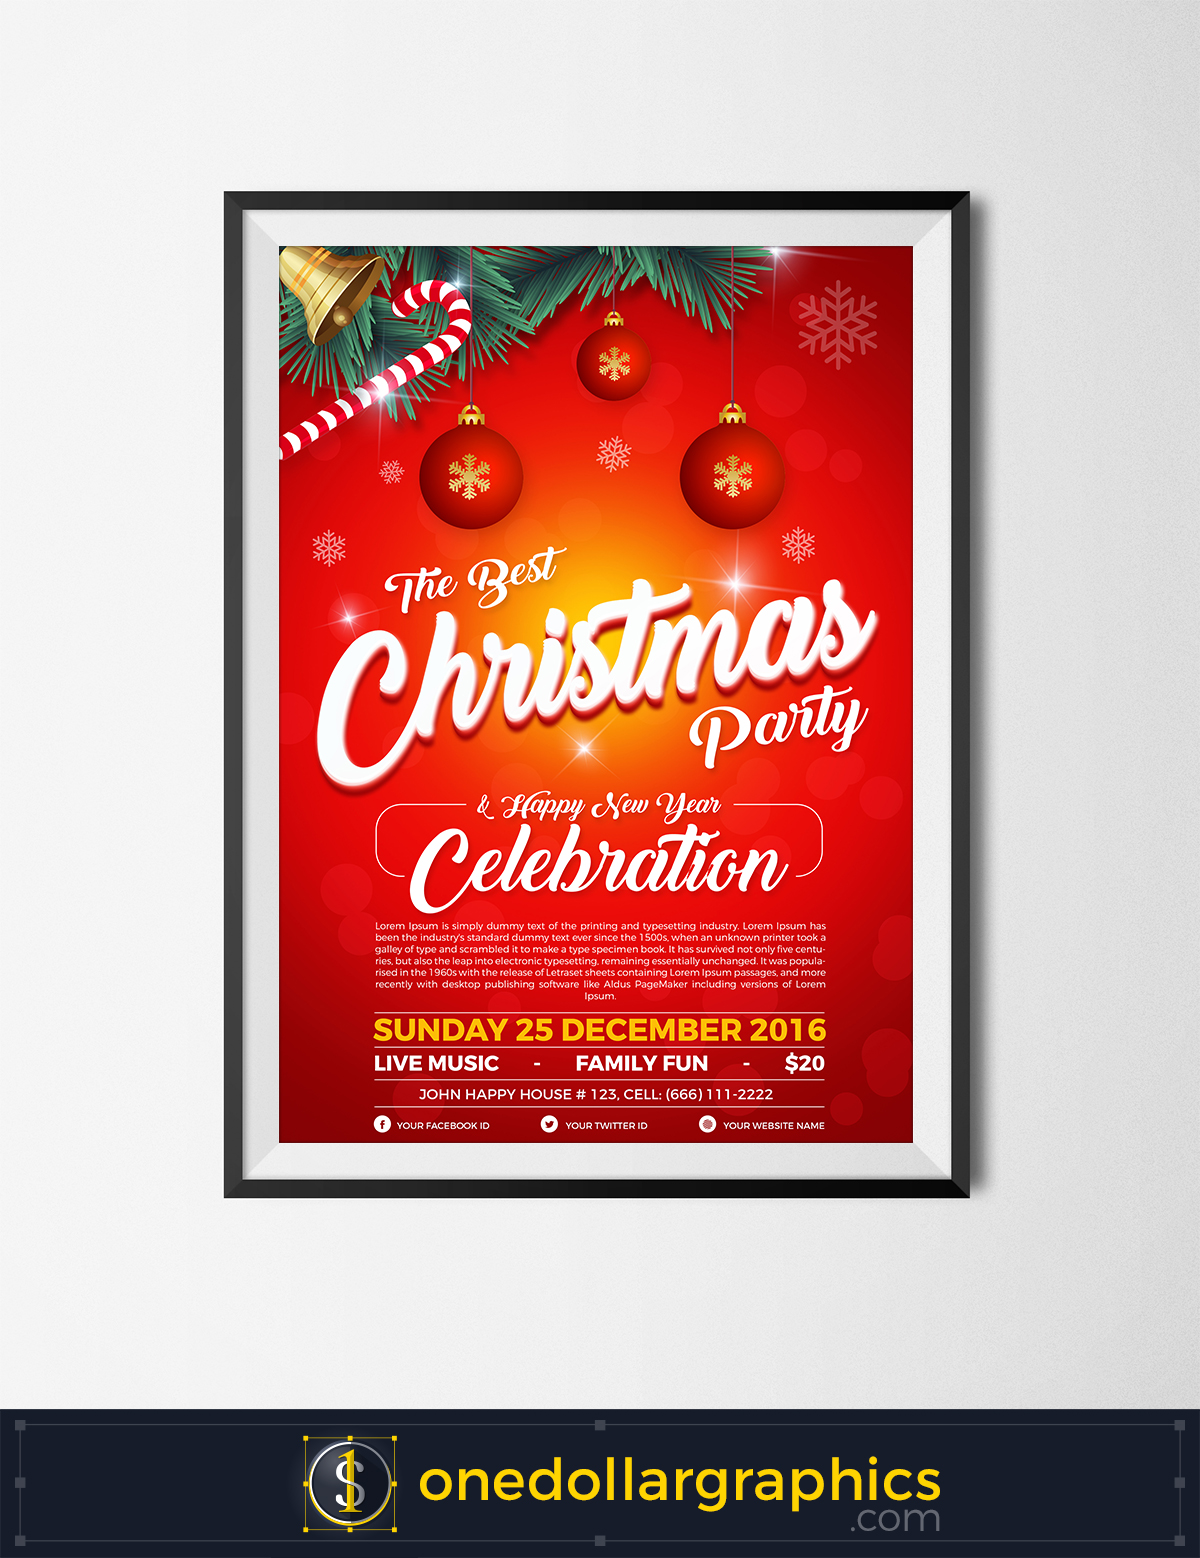 Free Christmas & Happy New Year Party Flyer Design Template In Ai & Psd  Format